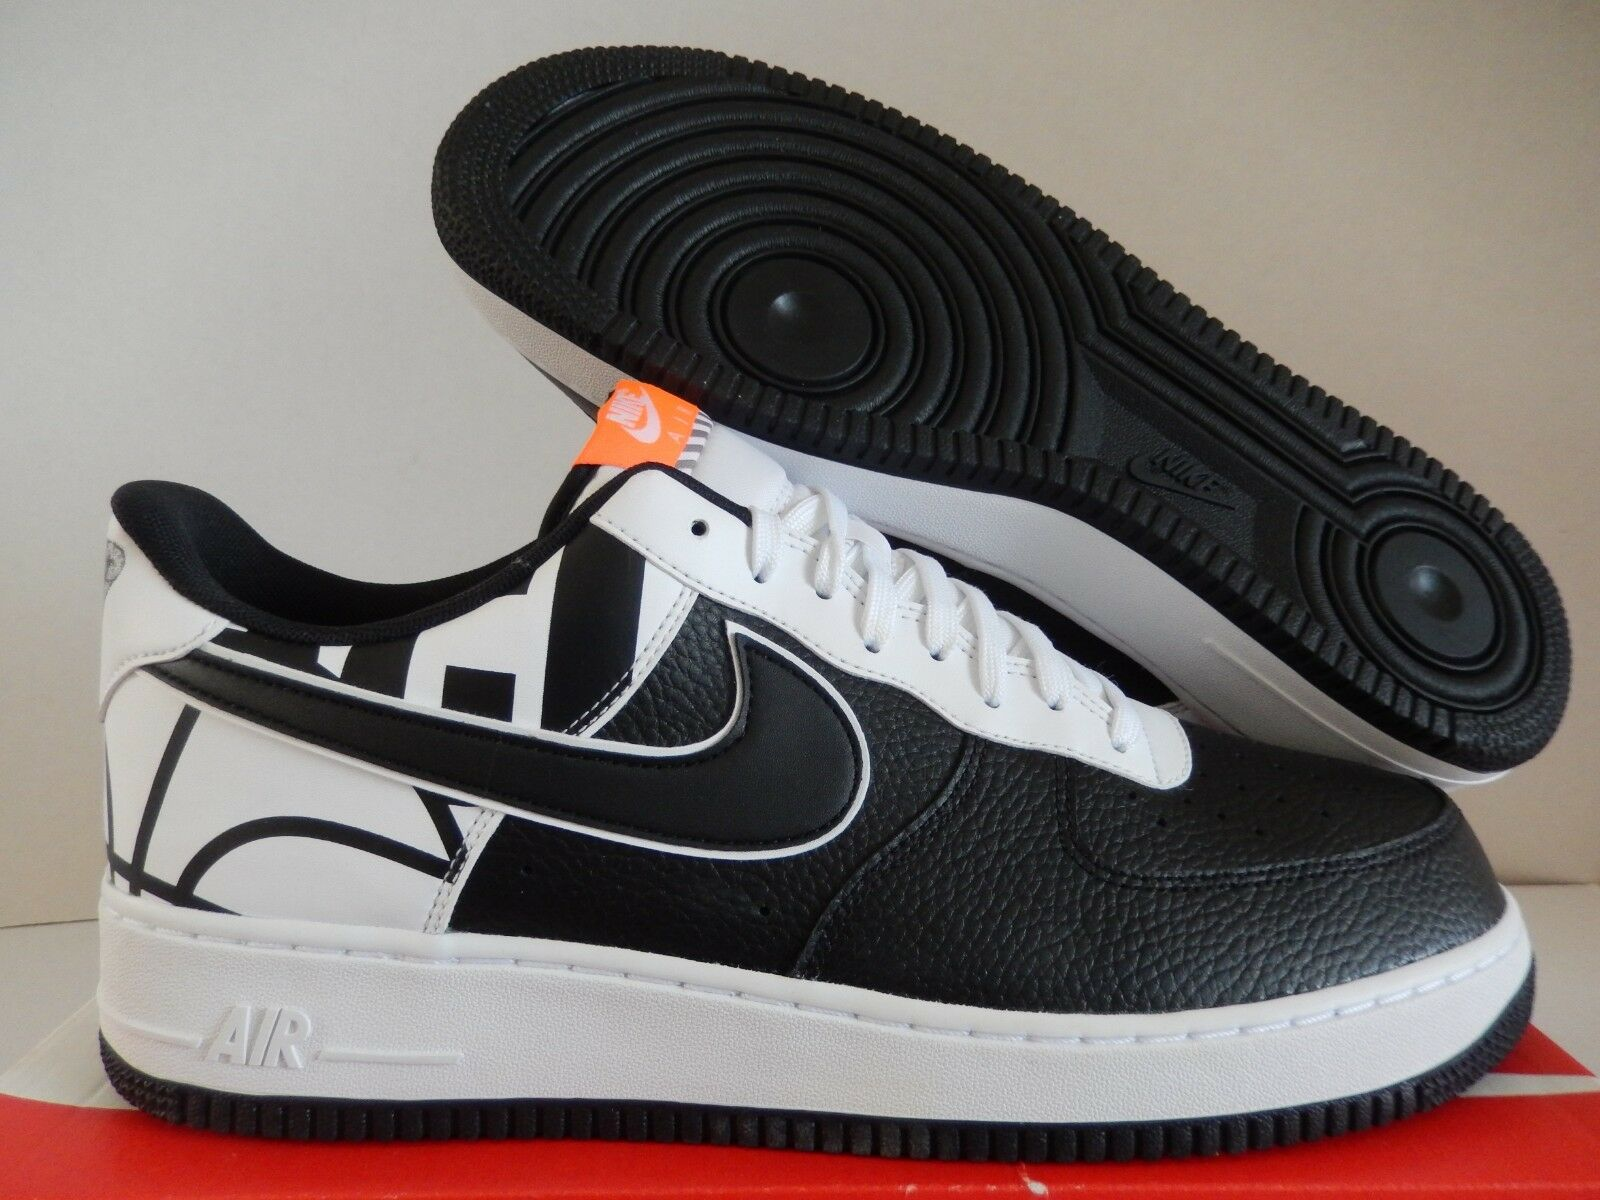 NIKE FORCE 1 07 Negroblanco LV8 AIR NBA LOGO Pack Negroblanco 07 [8235201811] 7a03a6